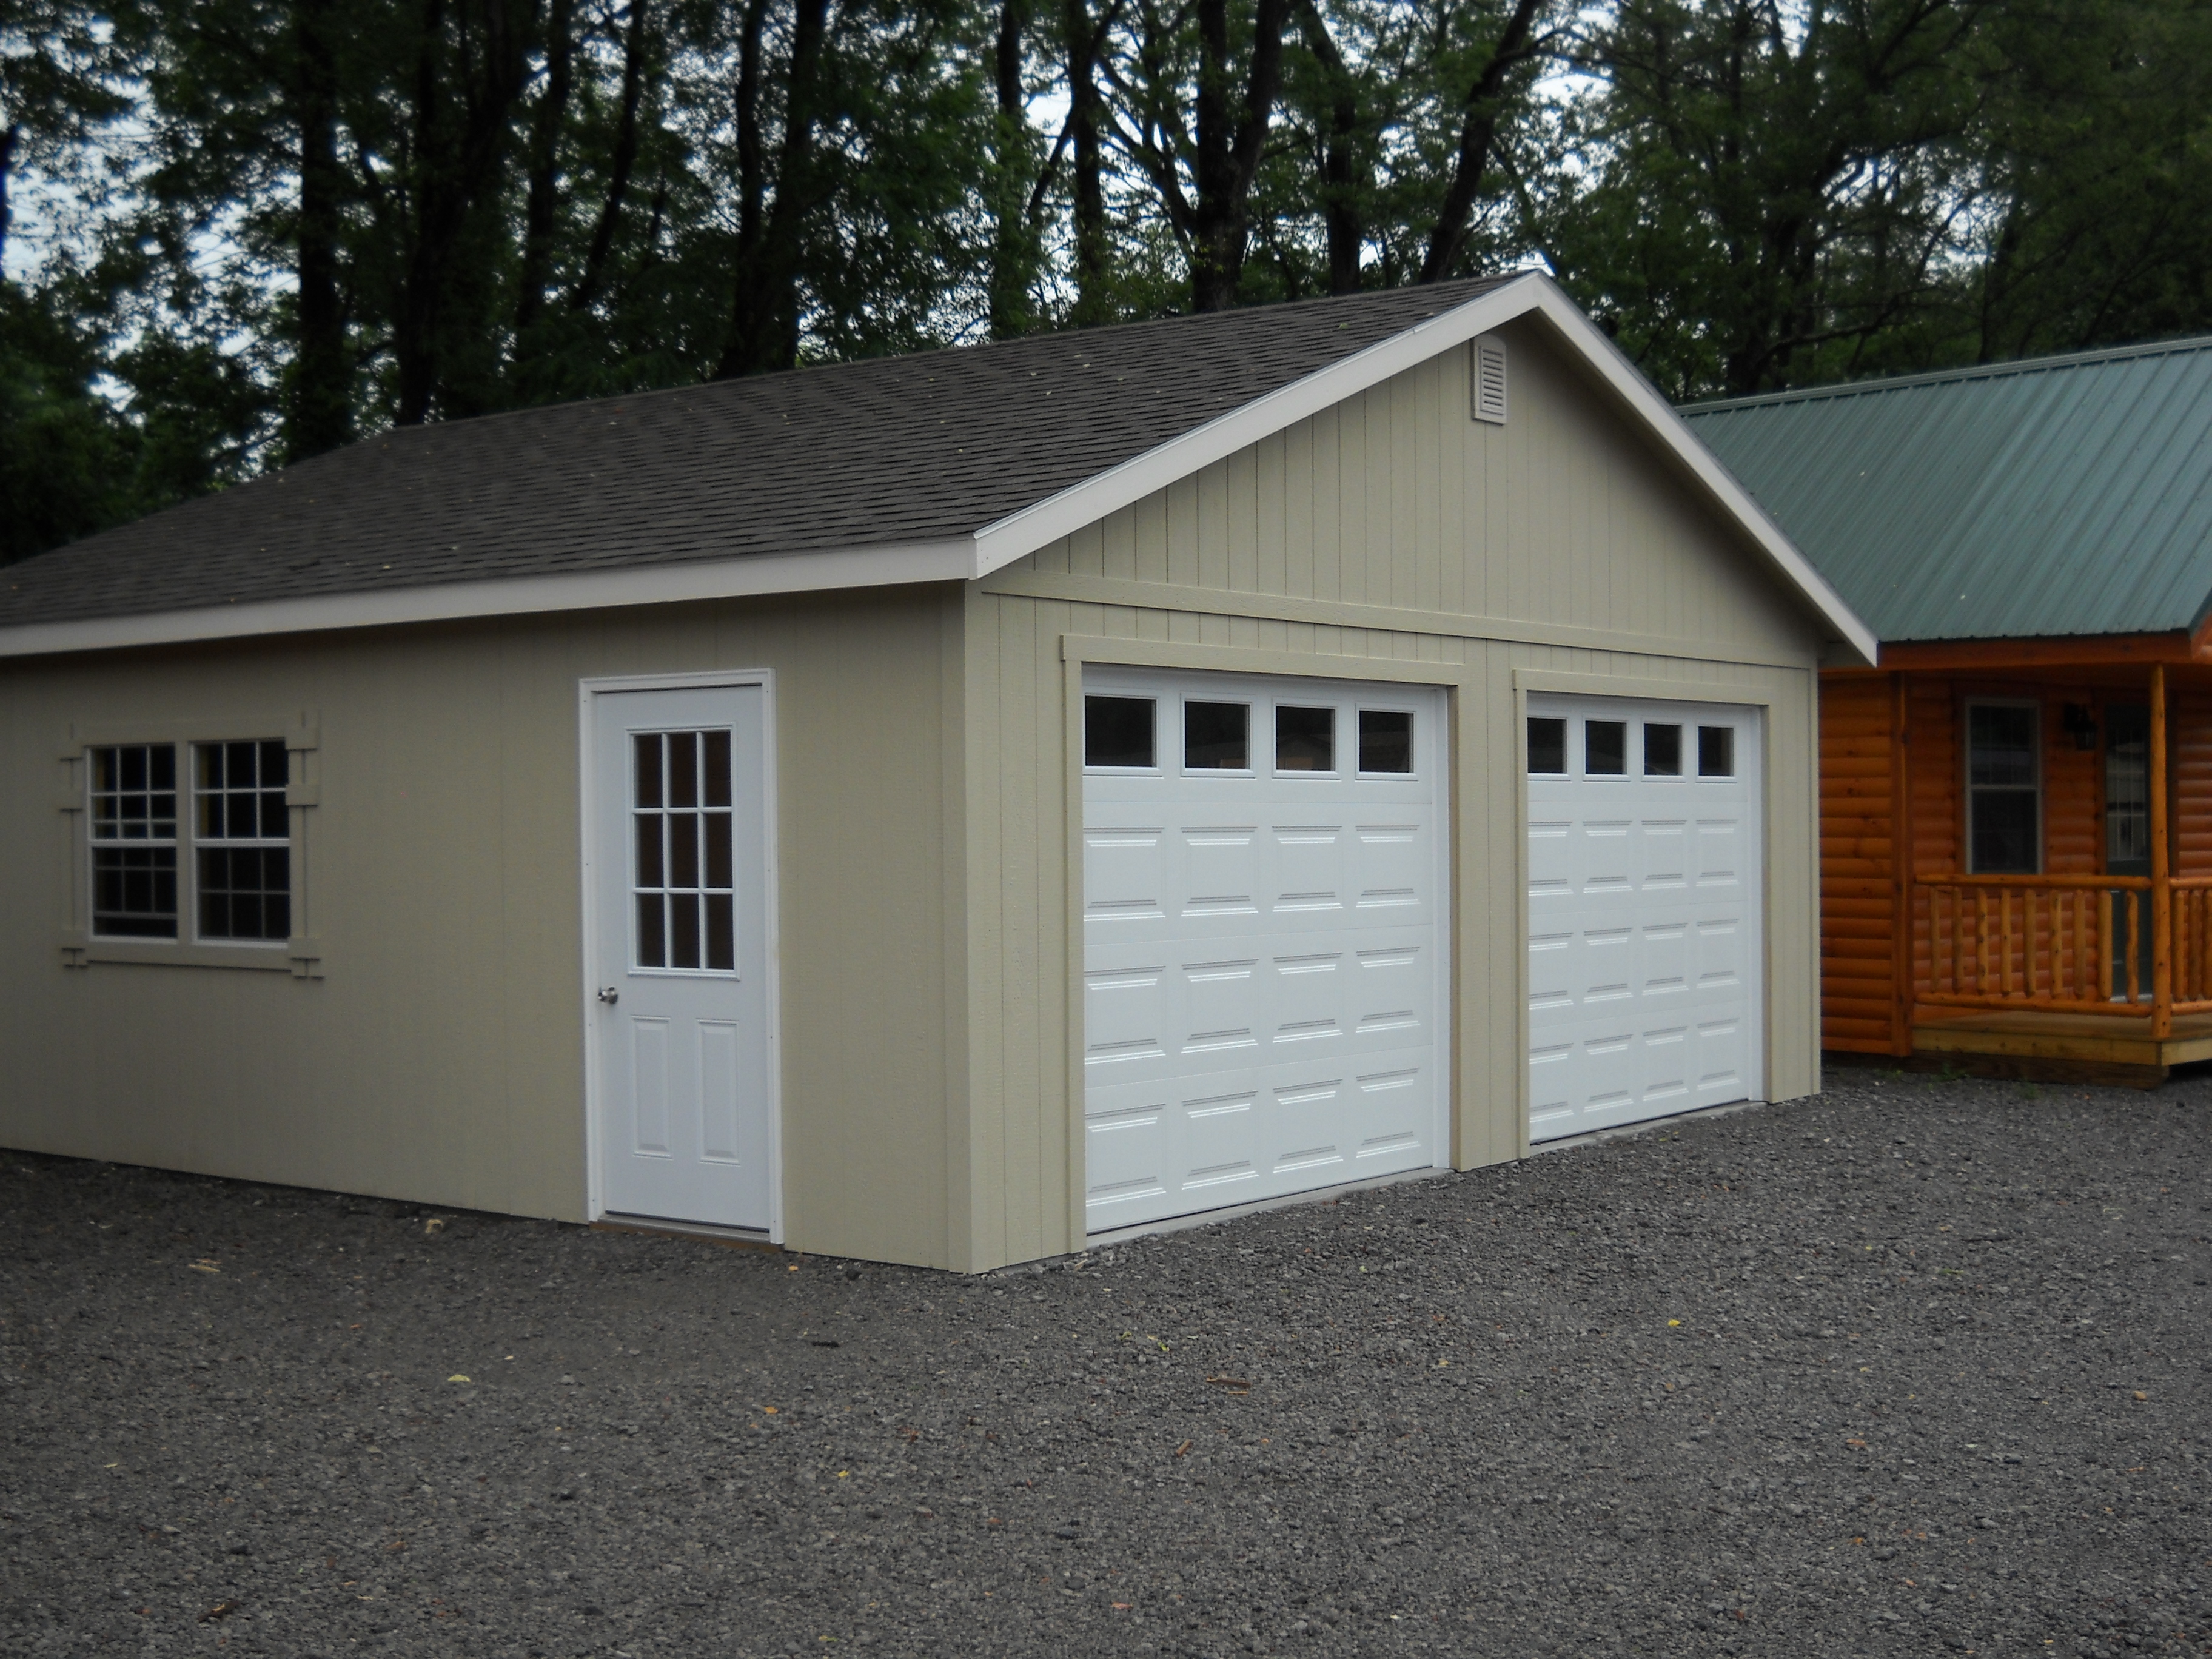 legacy photo builders pa with in beautiful garage detached gallery md de garages amish floor from nh space two ny the story va apartment on